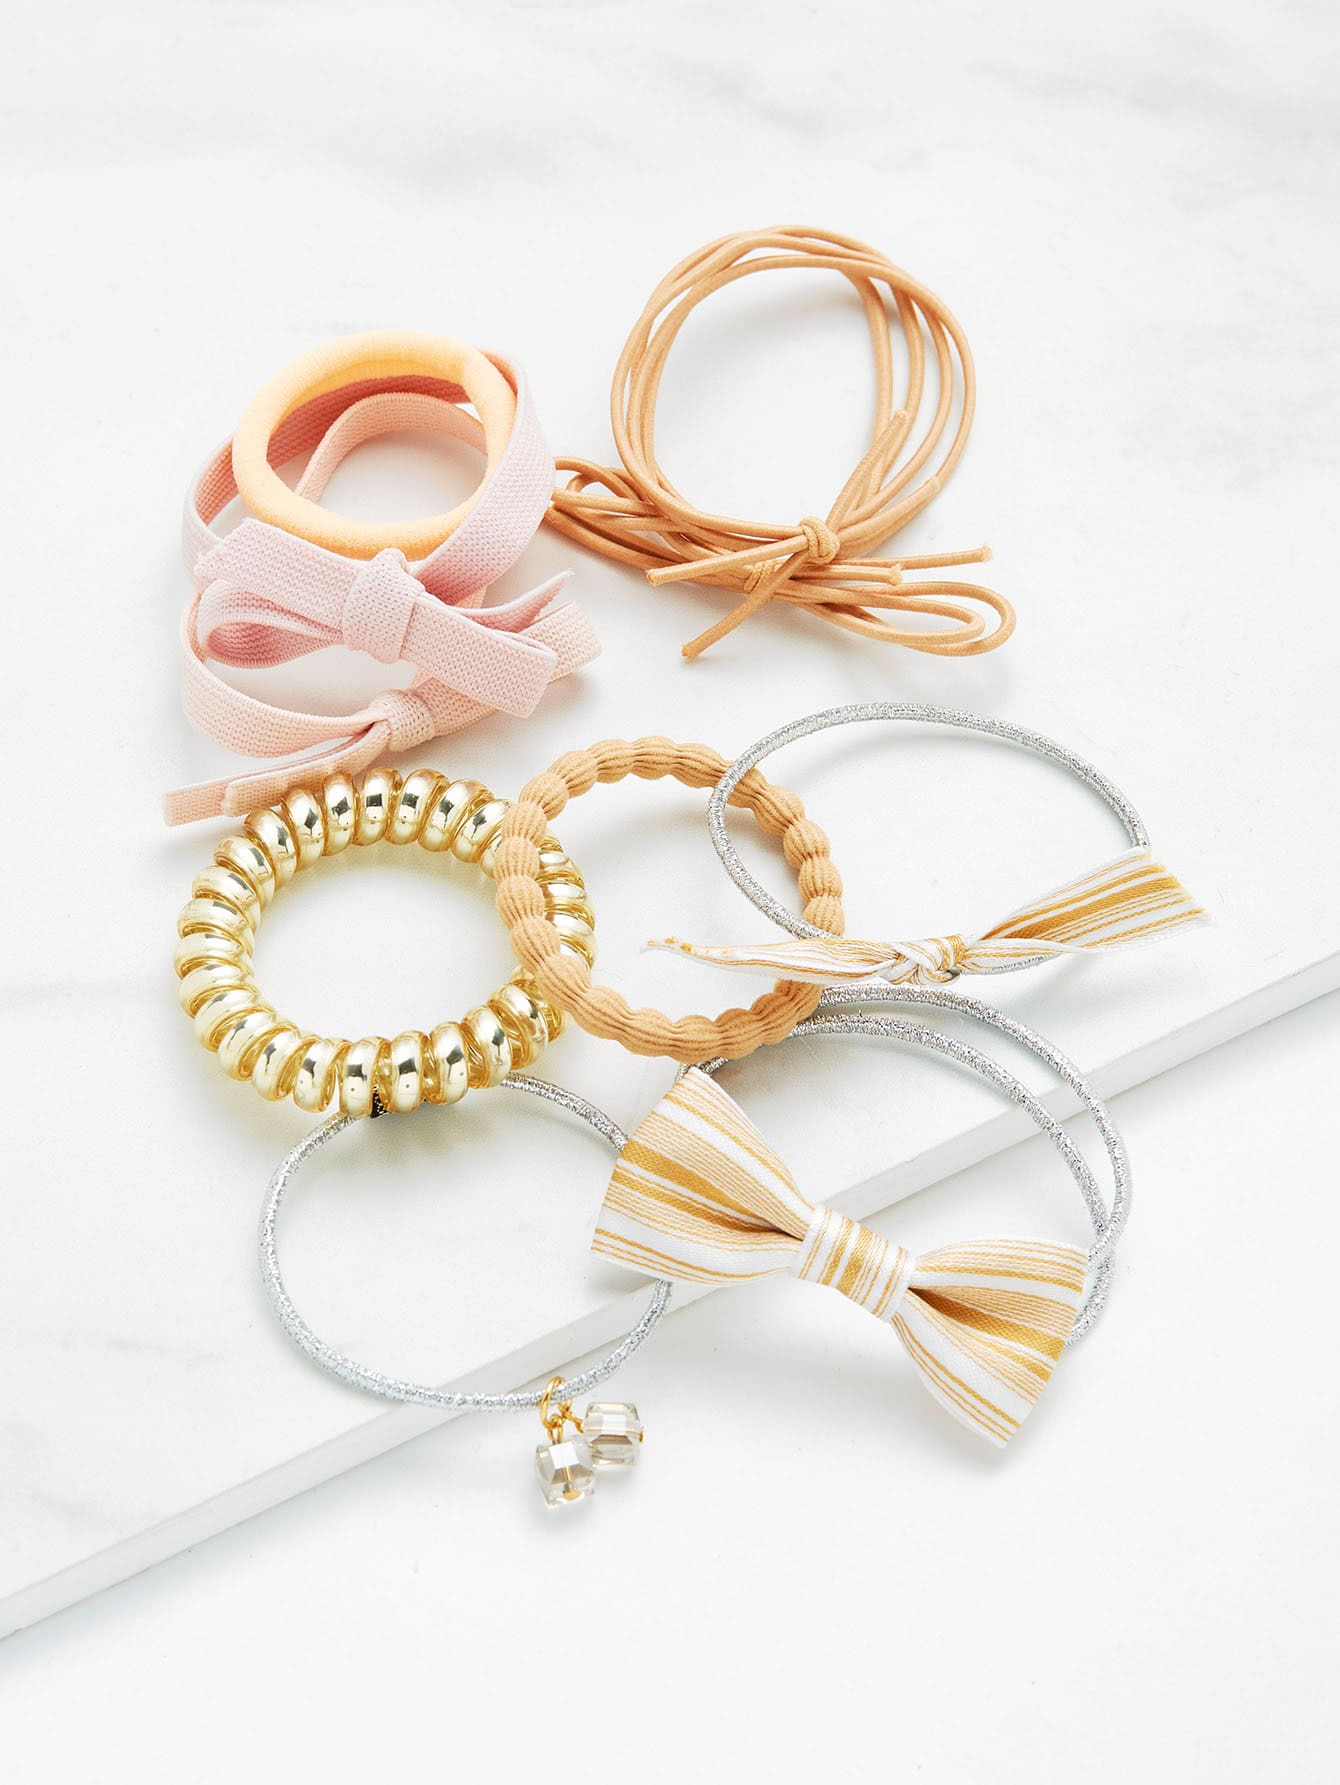 Coil & Knotted Hair Tie 10pcs With Mesh Bag 68 7747 10